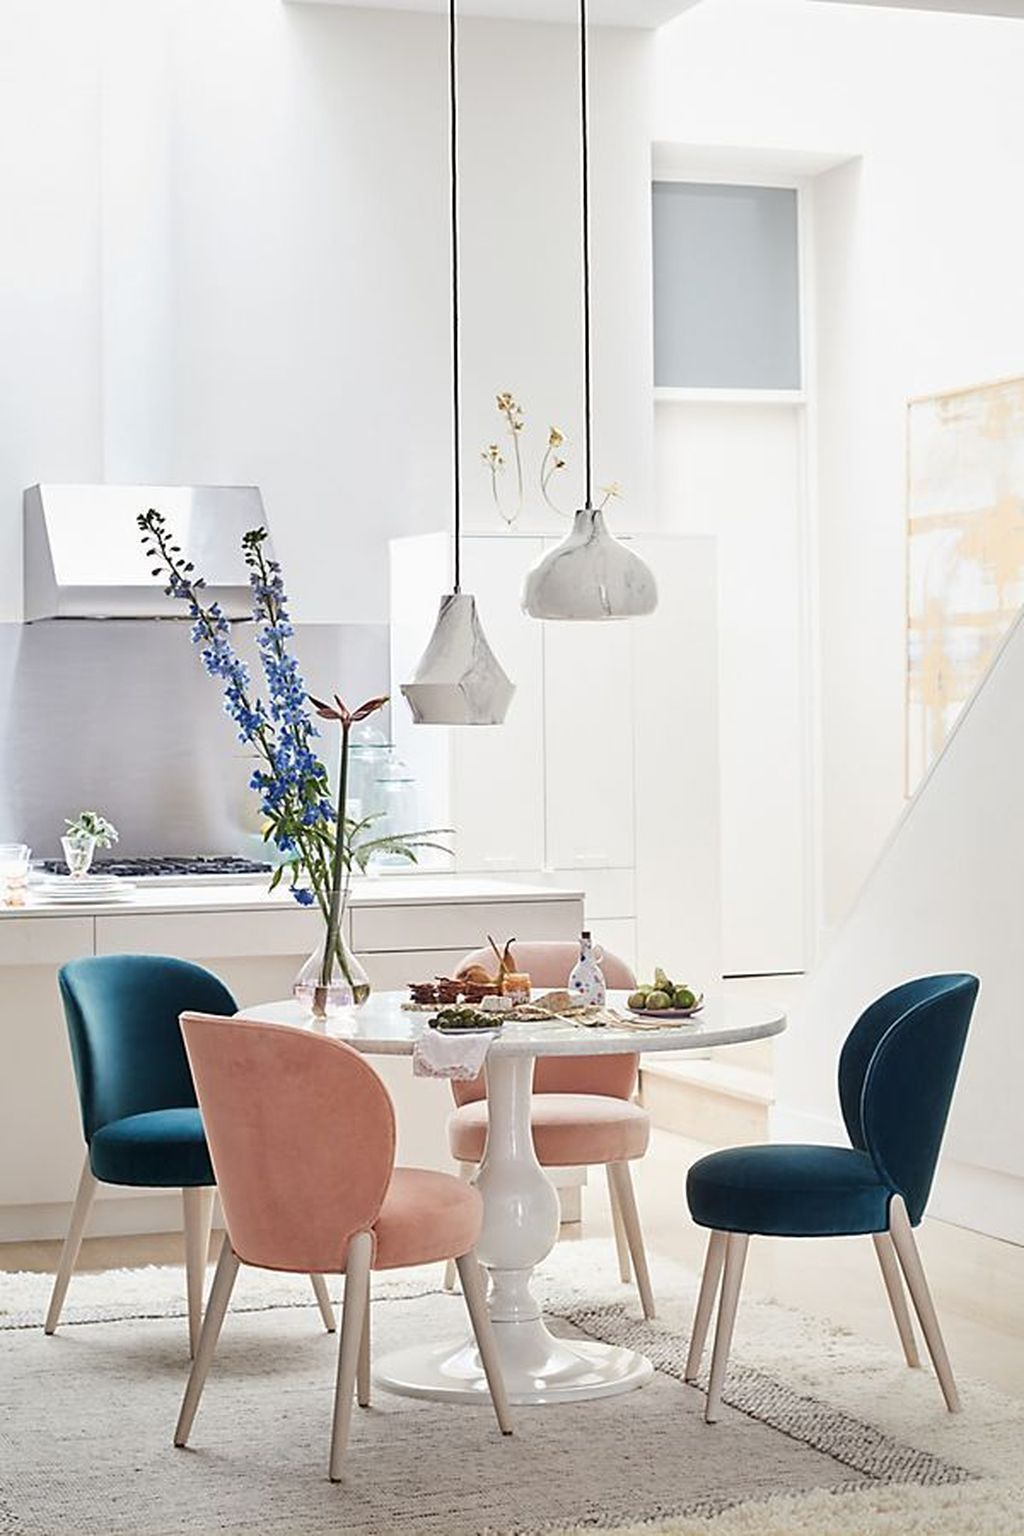 dining room, wooden floor, white wall, white pendants, white round table, pink blue modern chairs, white kitchen cabinet